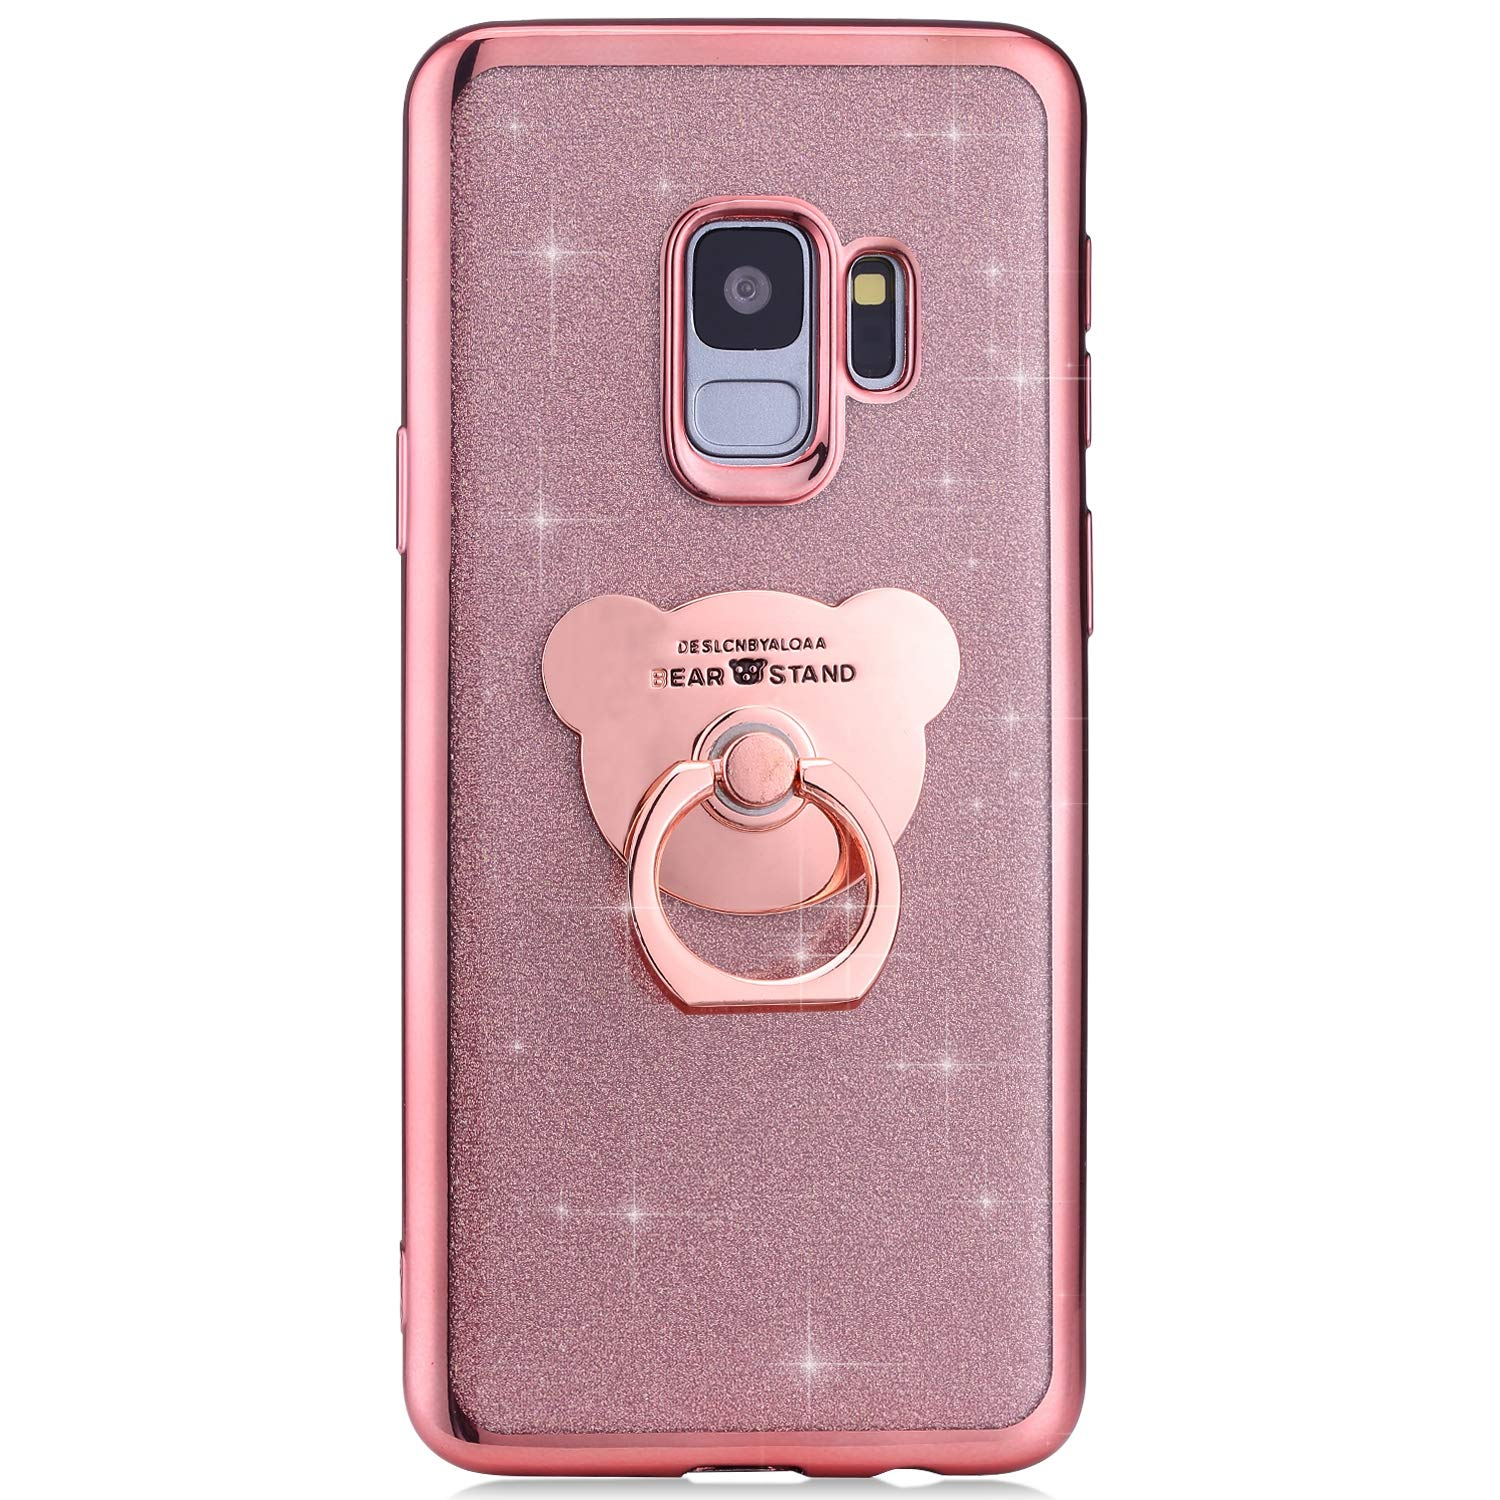 Ysimee Compatible with Samsung Galaxy S9 Cases,Bling Glitter Sparkle Ultra thin TPU Silicone Protective Covers with Finger Ring Stand Support Function Bumper,Gold